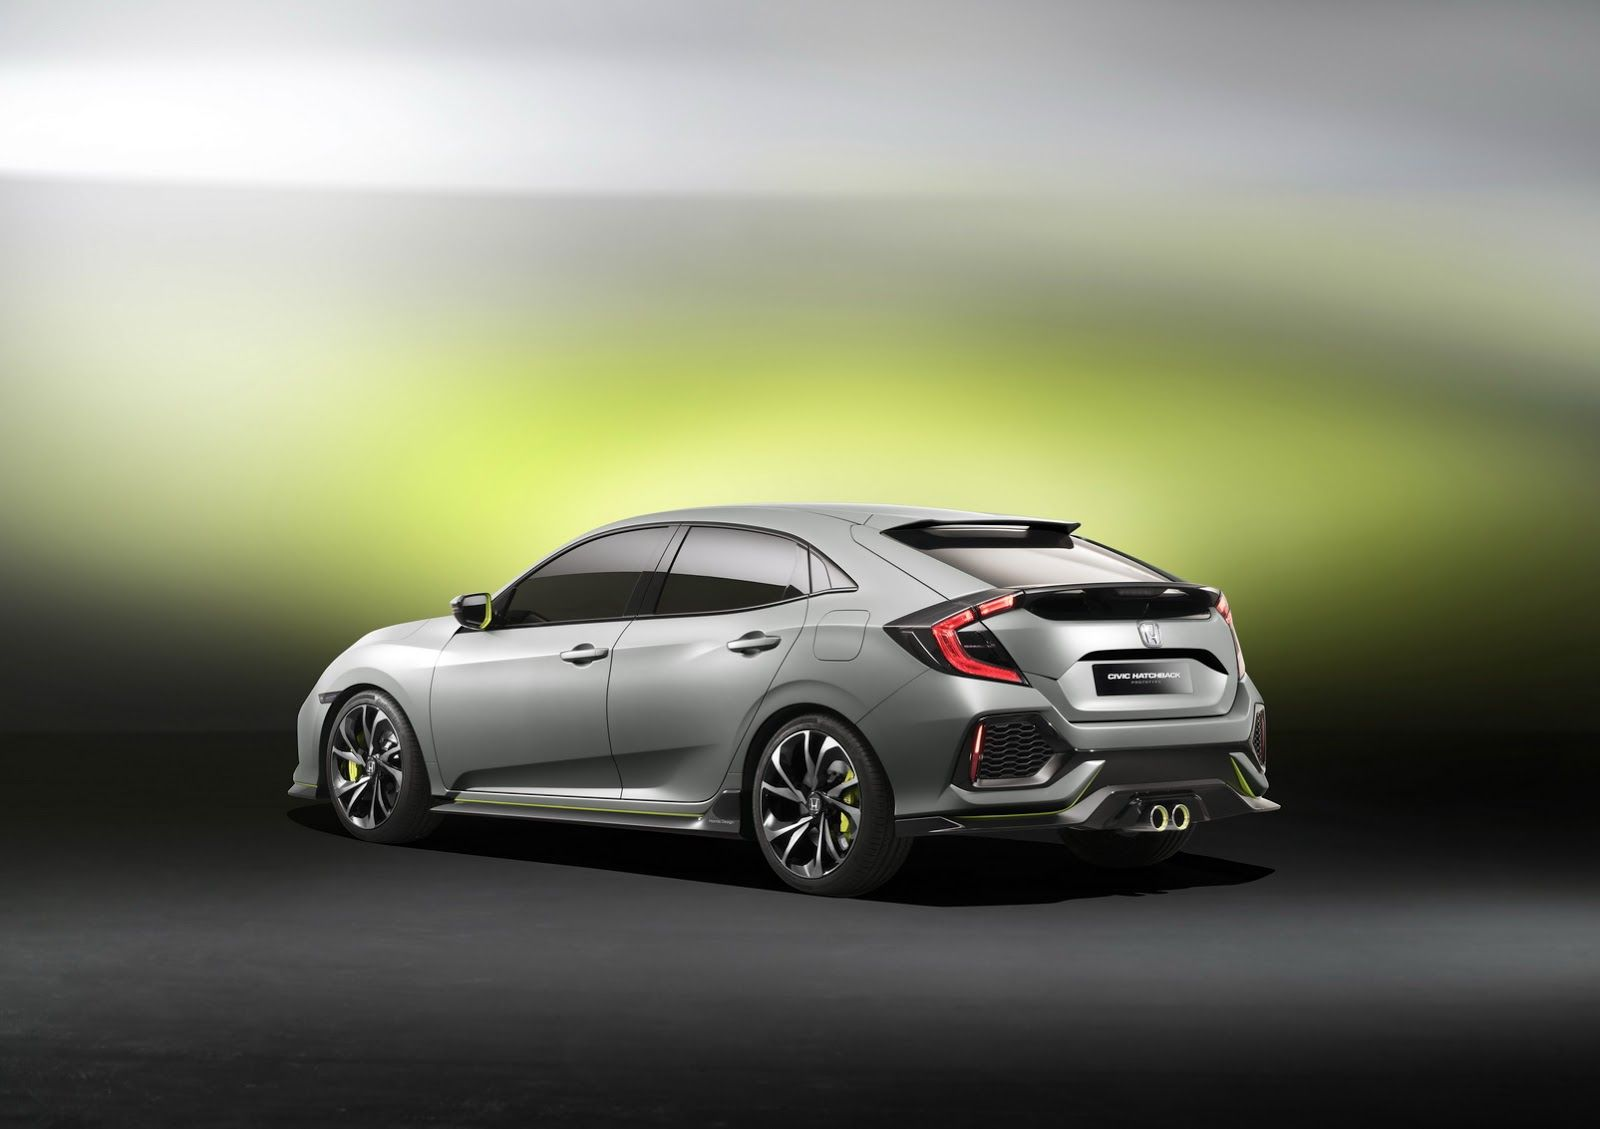 Honda Unveils Next Gen Civic Hatchback Prototype